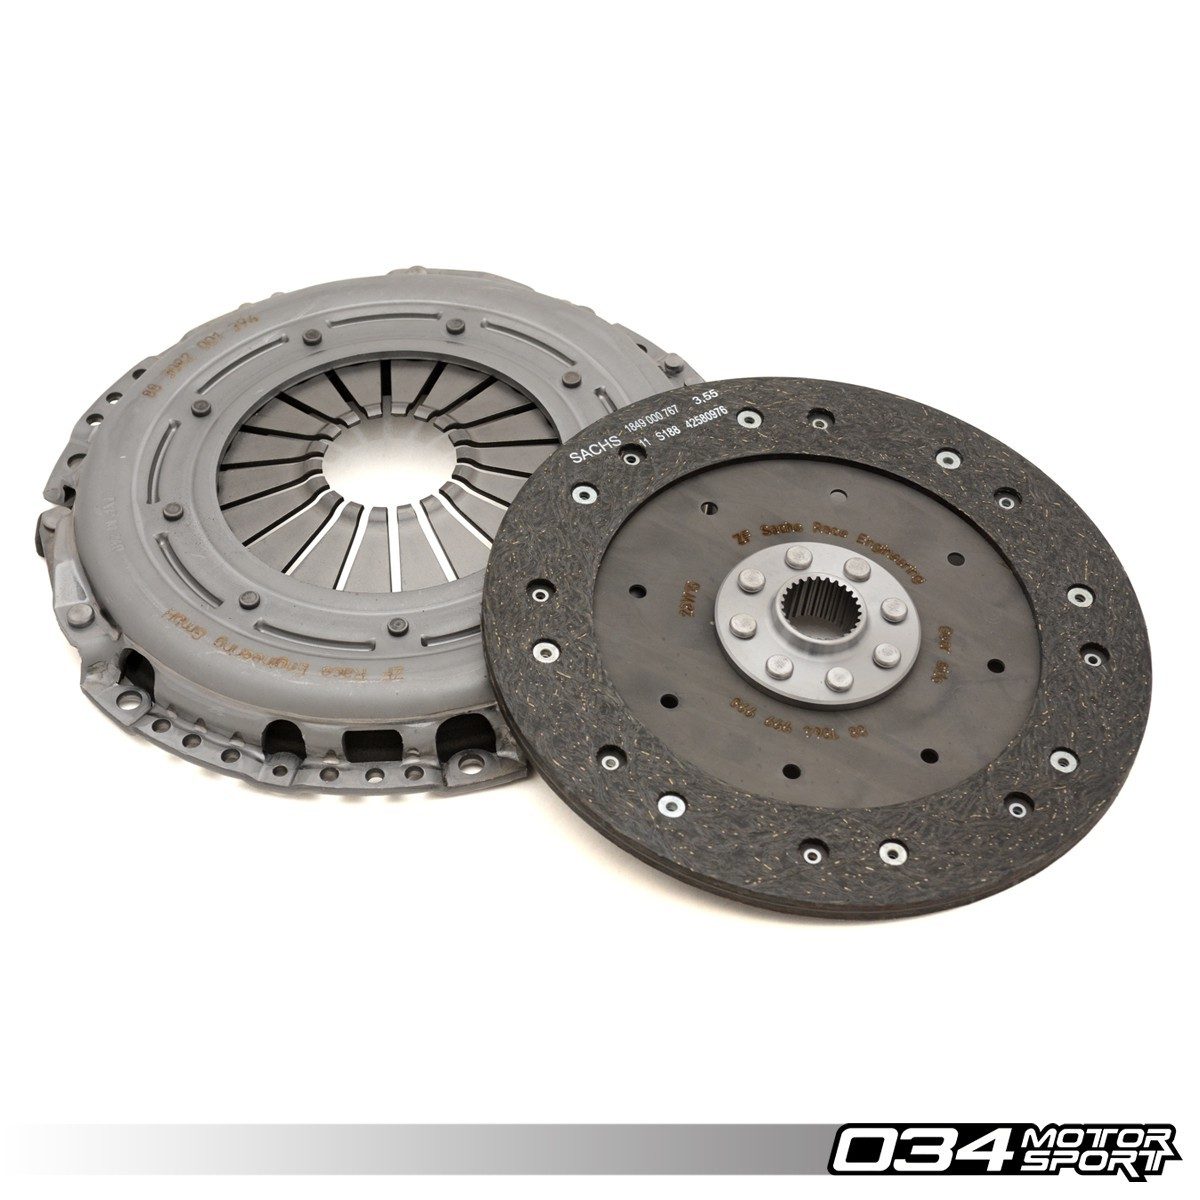 Sachs Performance Clutch Kit for B7 Audi RS4 4.2 | SPC-001939.001707